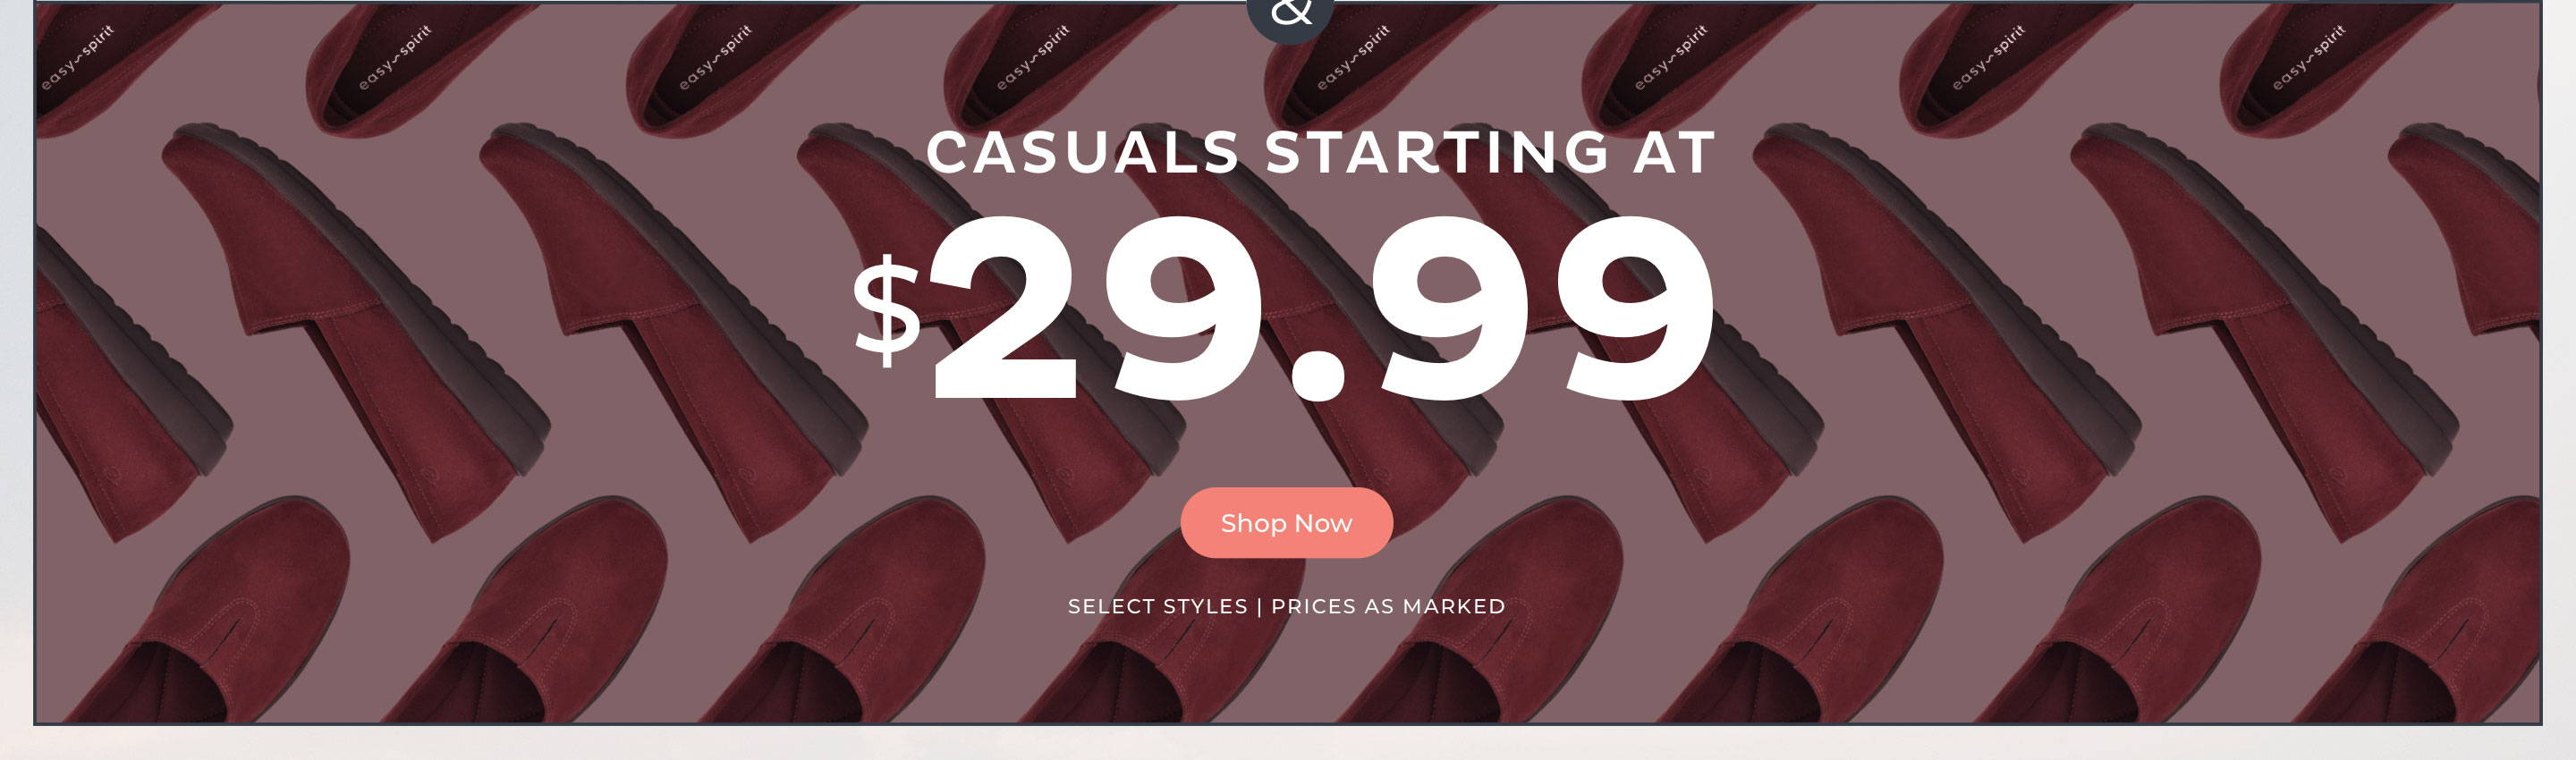 Casuals Starting at $29.99